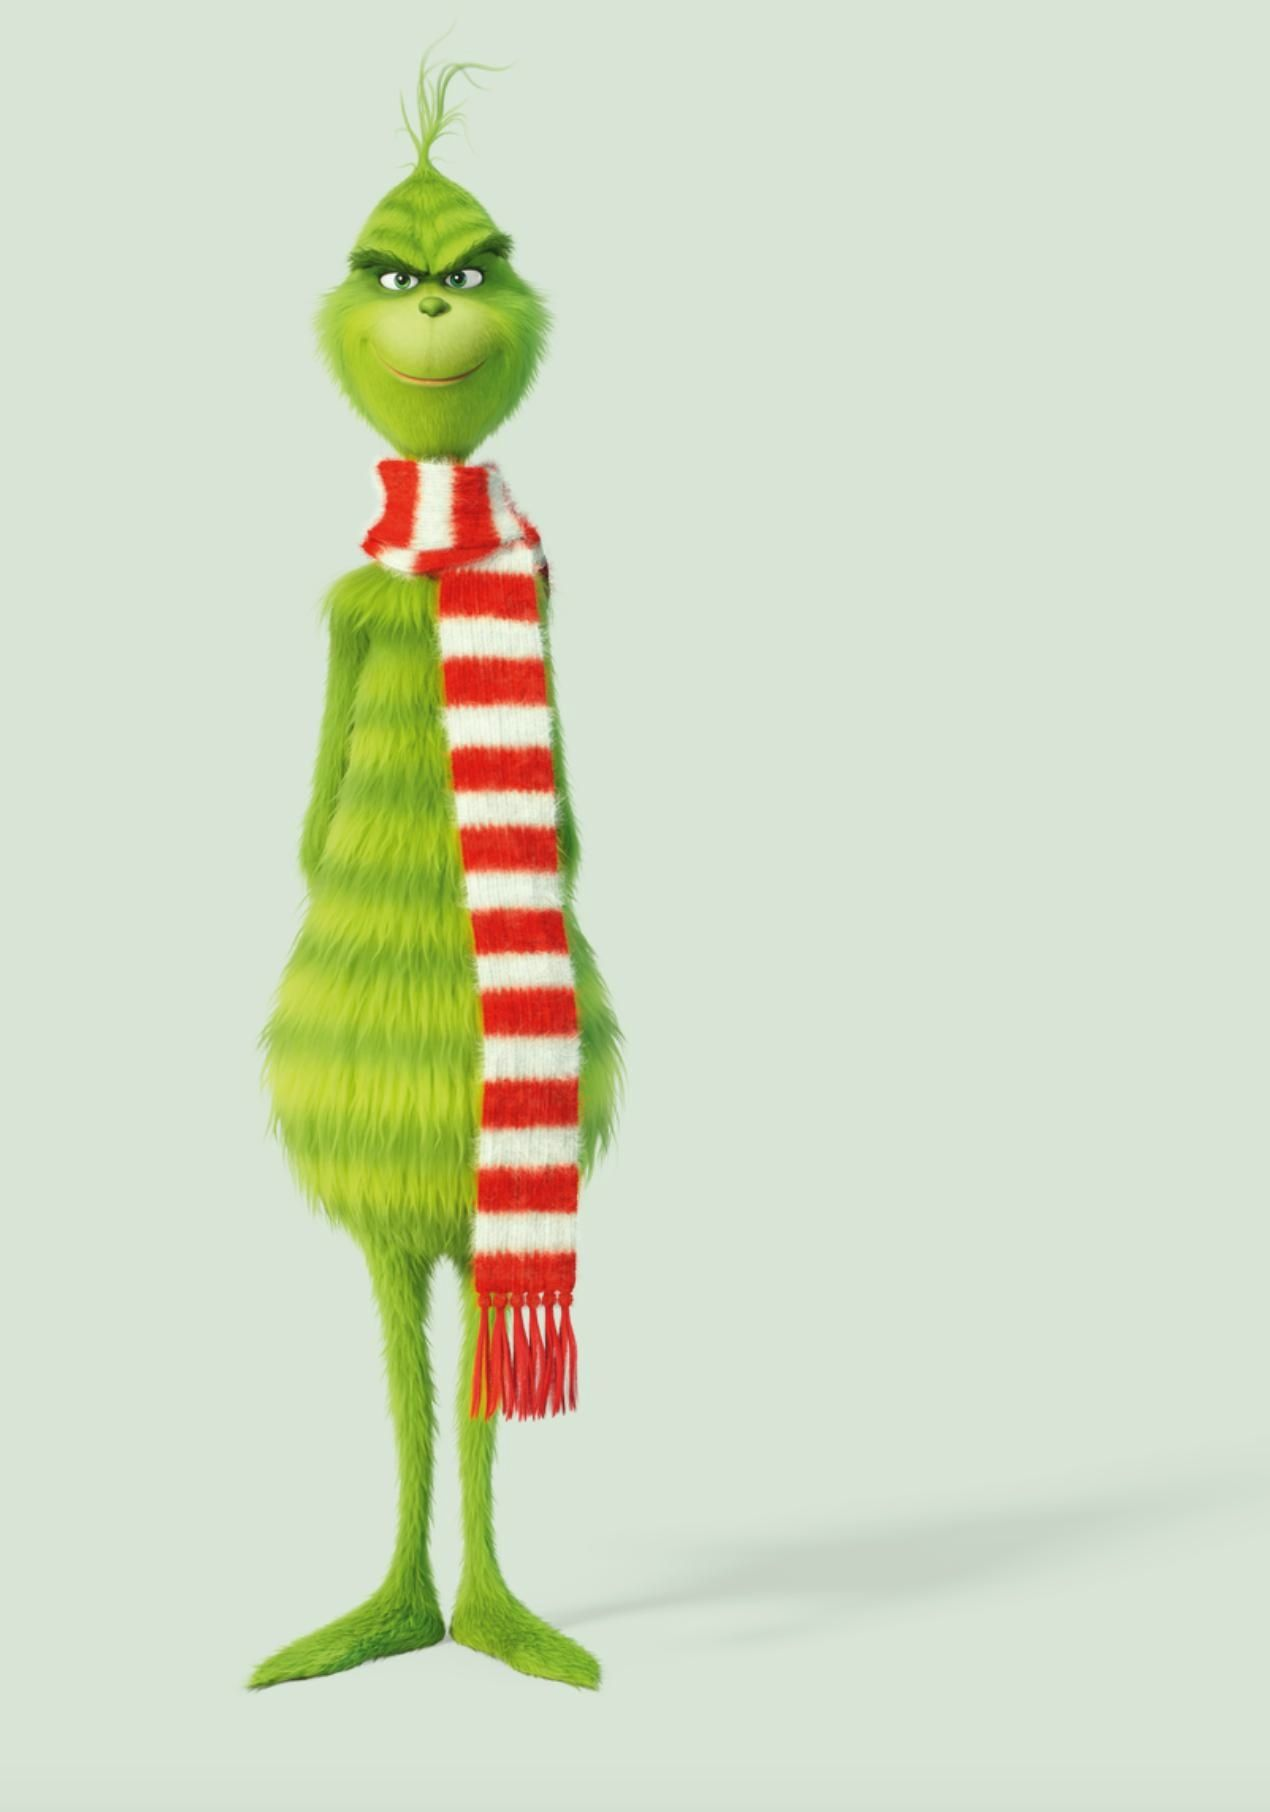 The Grinch Wallpapers Lock Screen HD for Android APK